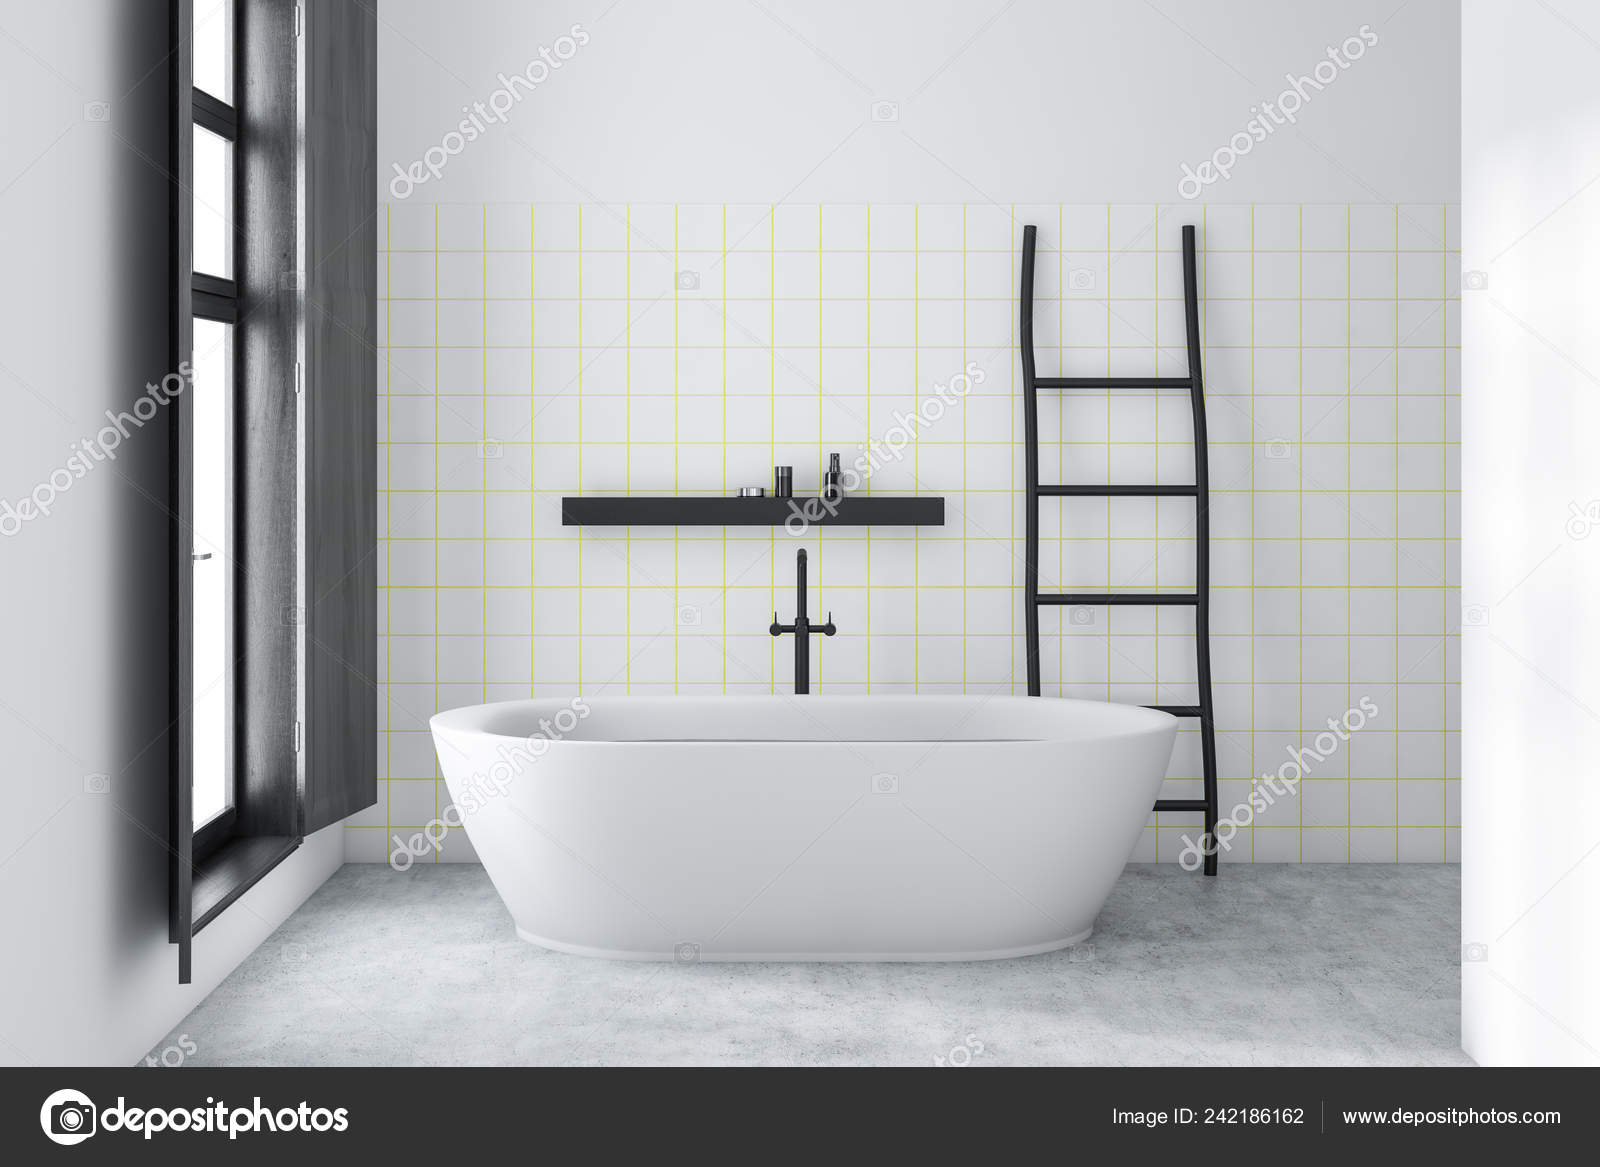 Interior Minimalistic Bathroom White White Tile Walls Concrete Floor White Stock Photo Image By C Denisismagilov 242186162